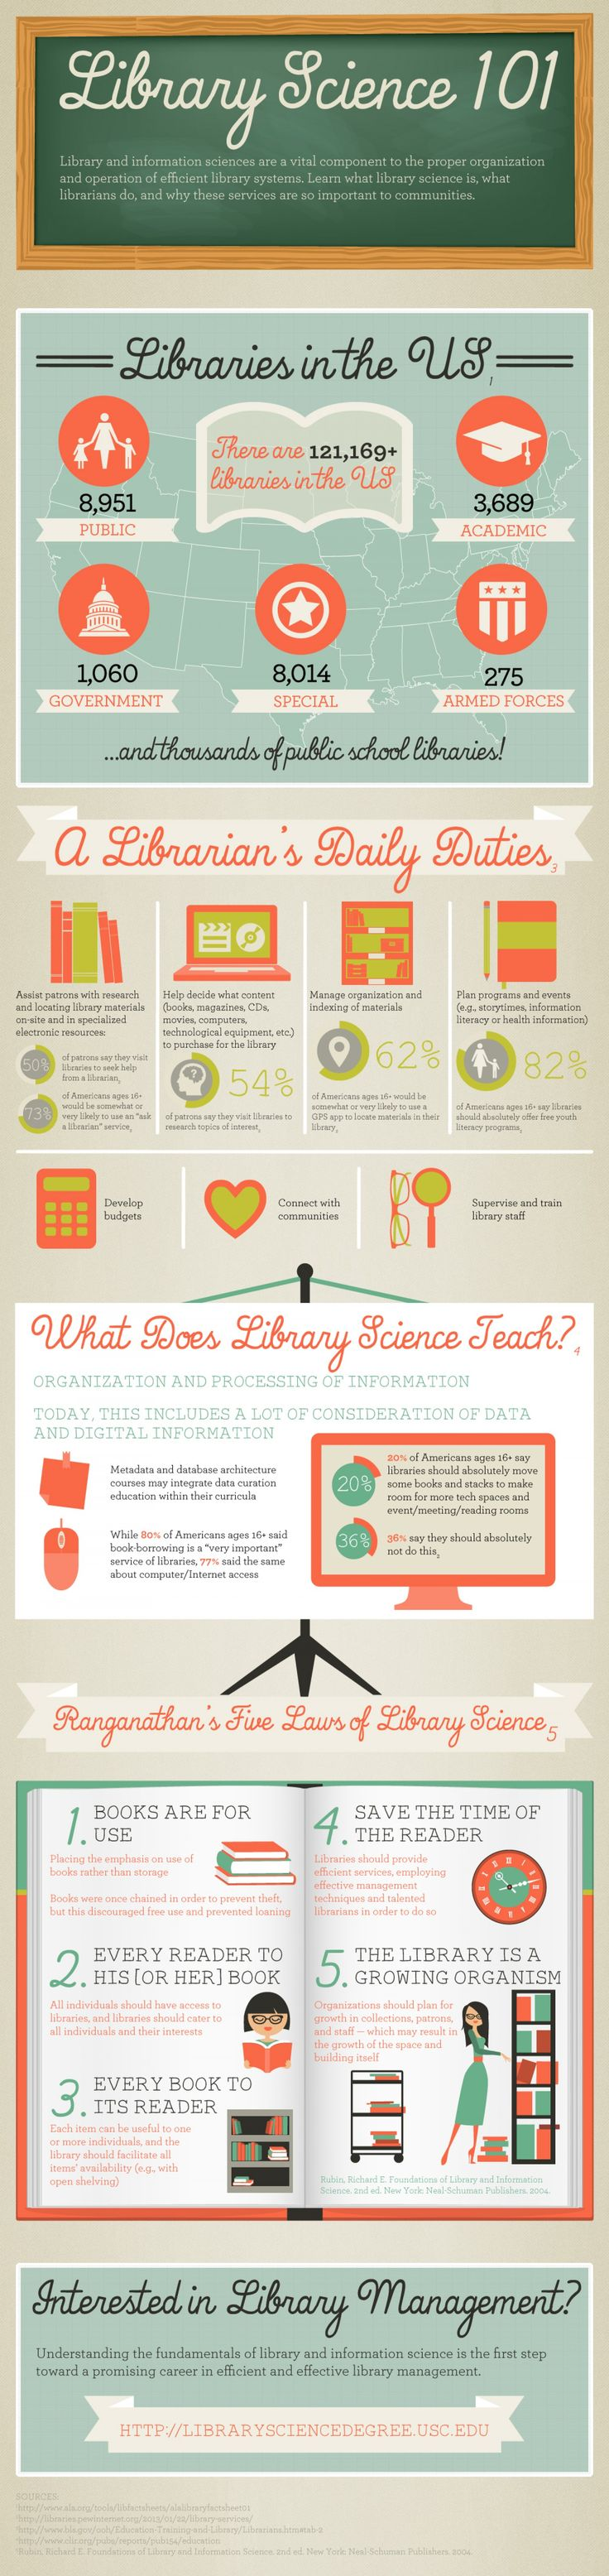 Library Science 101 Infographic.  I need to show this to everyone who thinks all I do is read at my job.